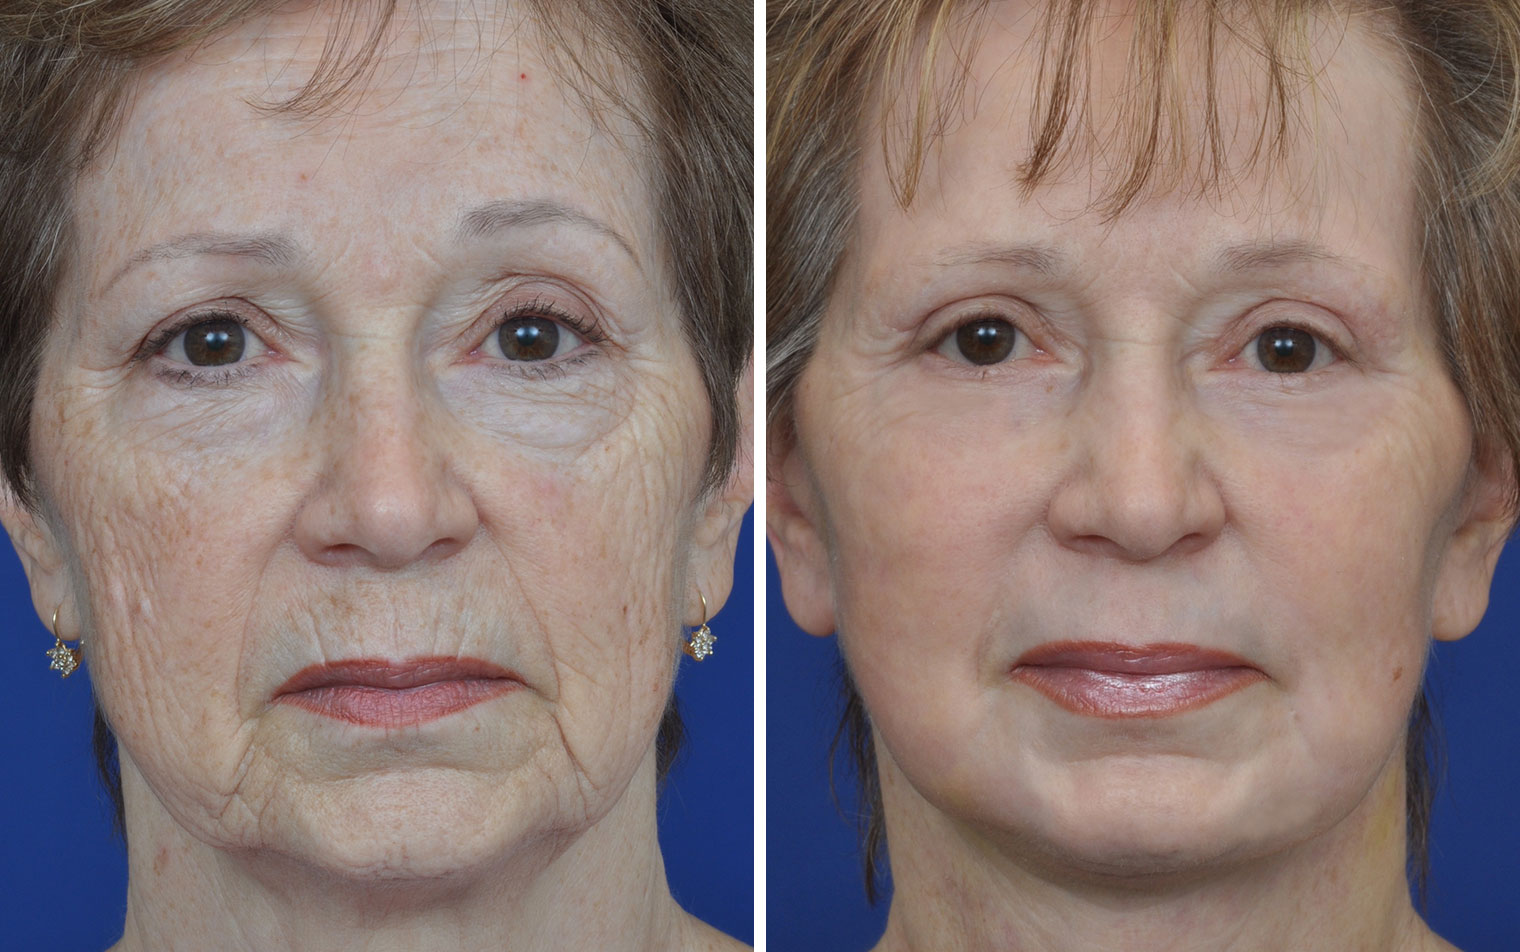 Mini Of Annapolis >> Facelift Before & After Photos Annapolis | Non Surgical Facelift